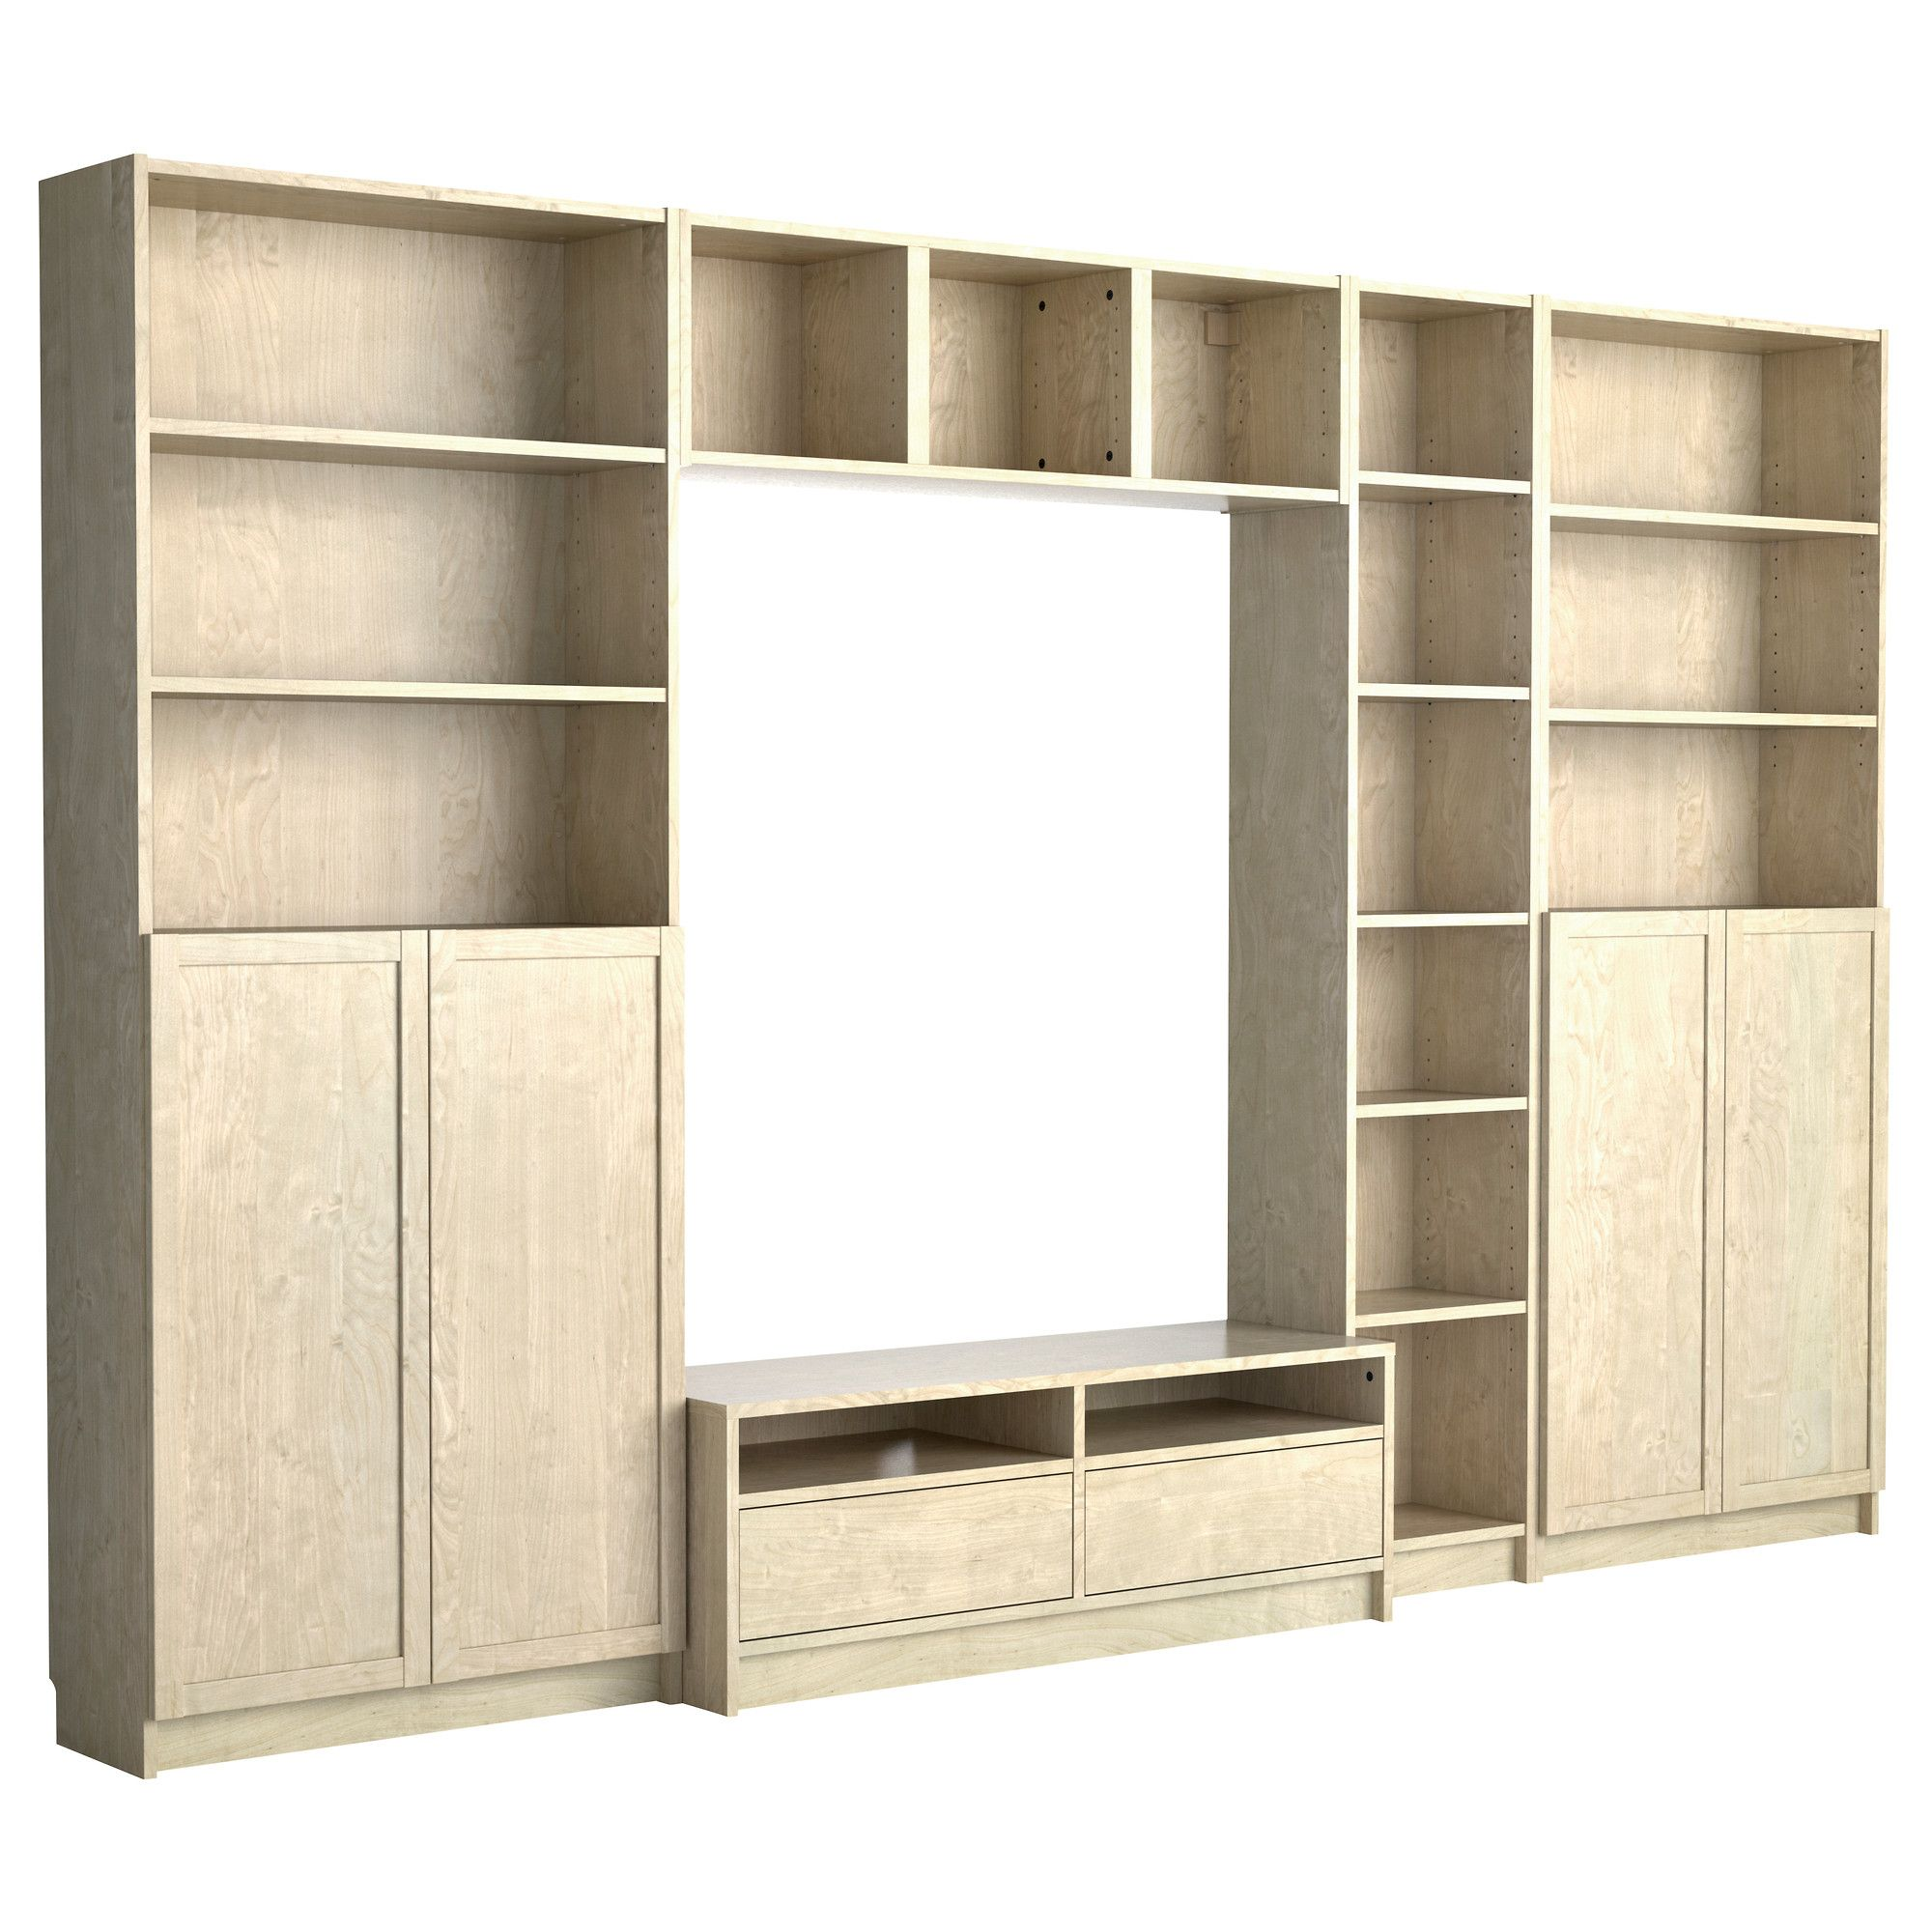 Benno Tv Meubel.Us Furniture And Home Furnishings In 2020 Wall Storage Tv